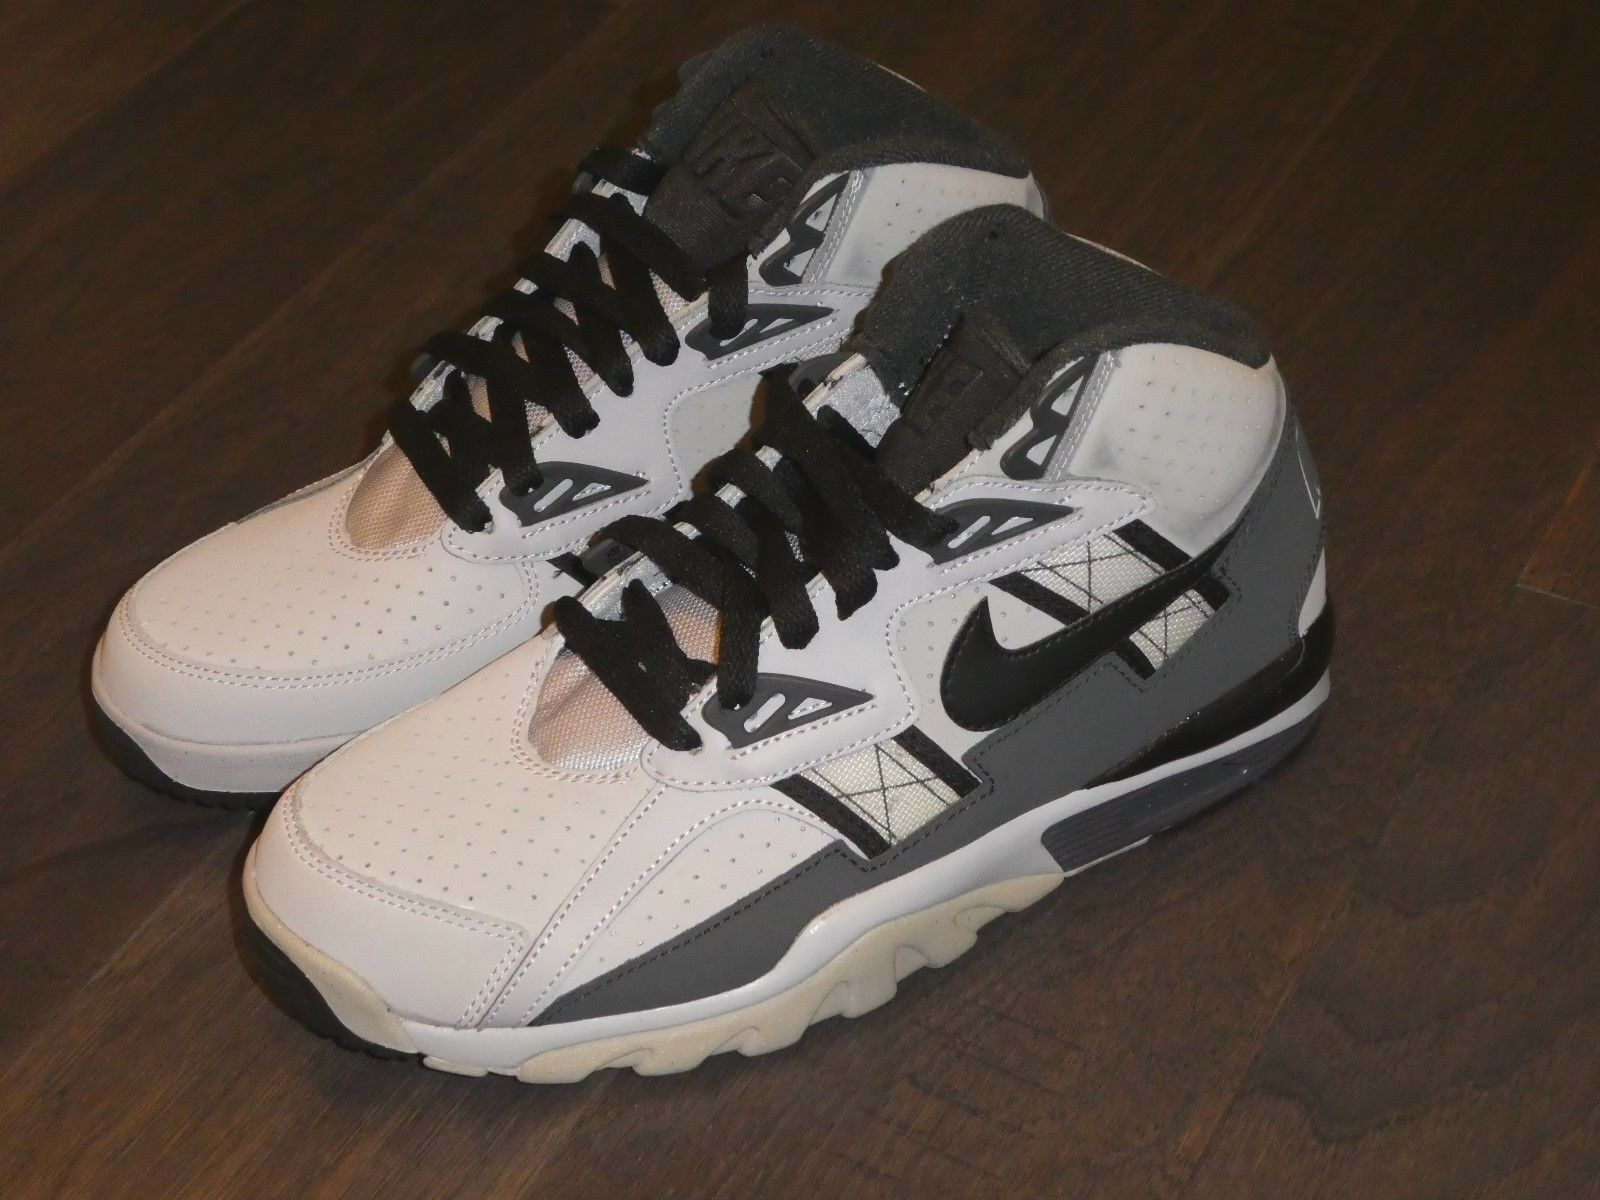 Nike Air Trainer Trainer Trainer SC High shoes mens new 302346 009 sneakers DEFECT size 7.5 1afebc